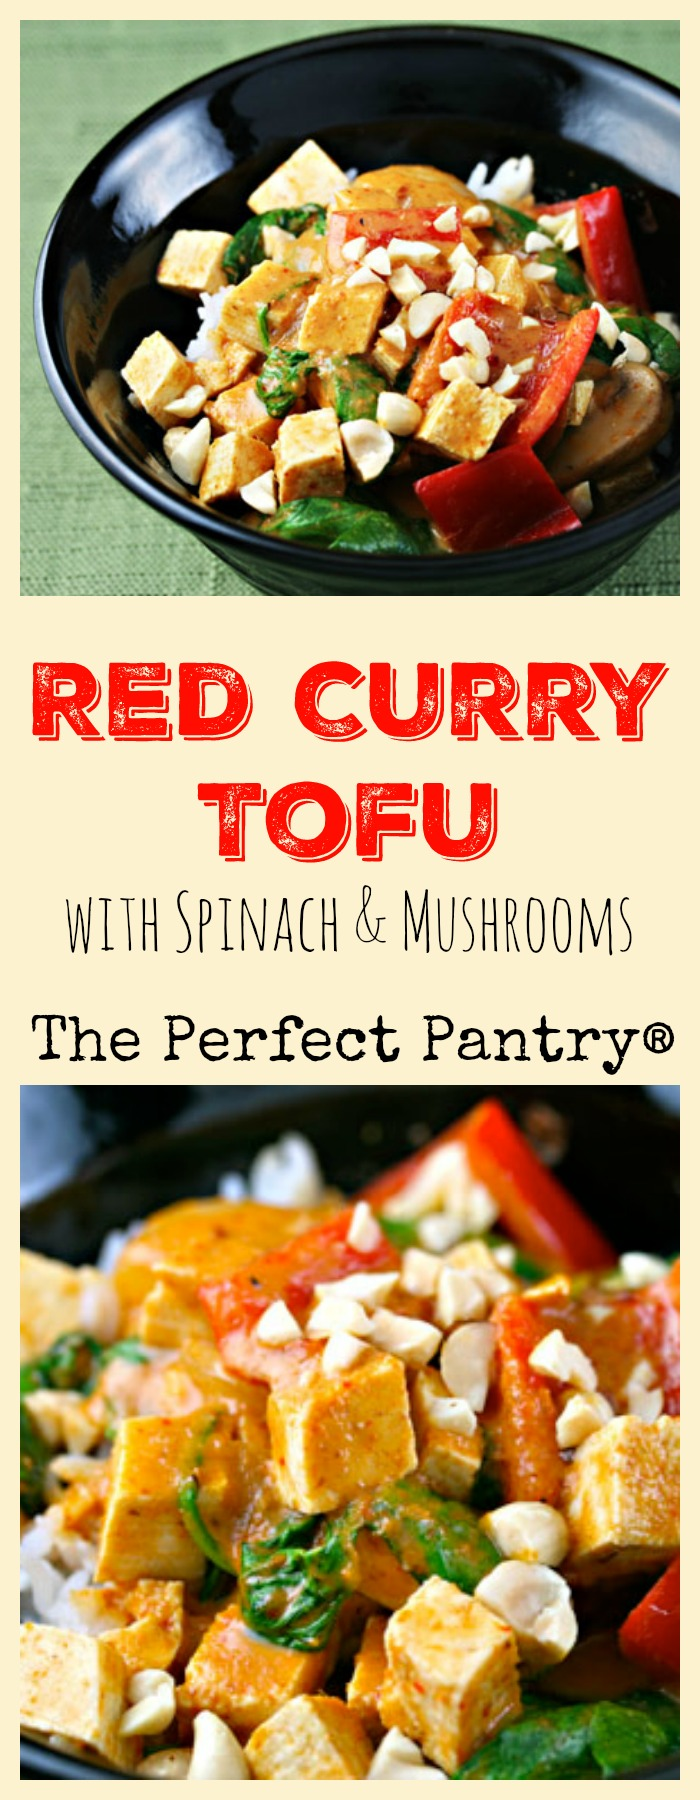 Red curry tofu with spinach and mushrooms [ThePerfectPantry.com]